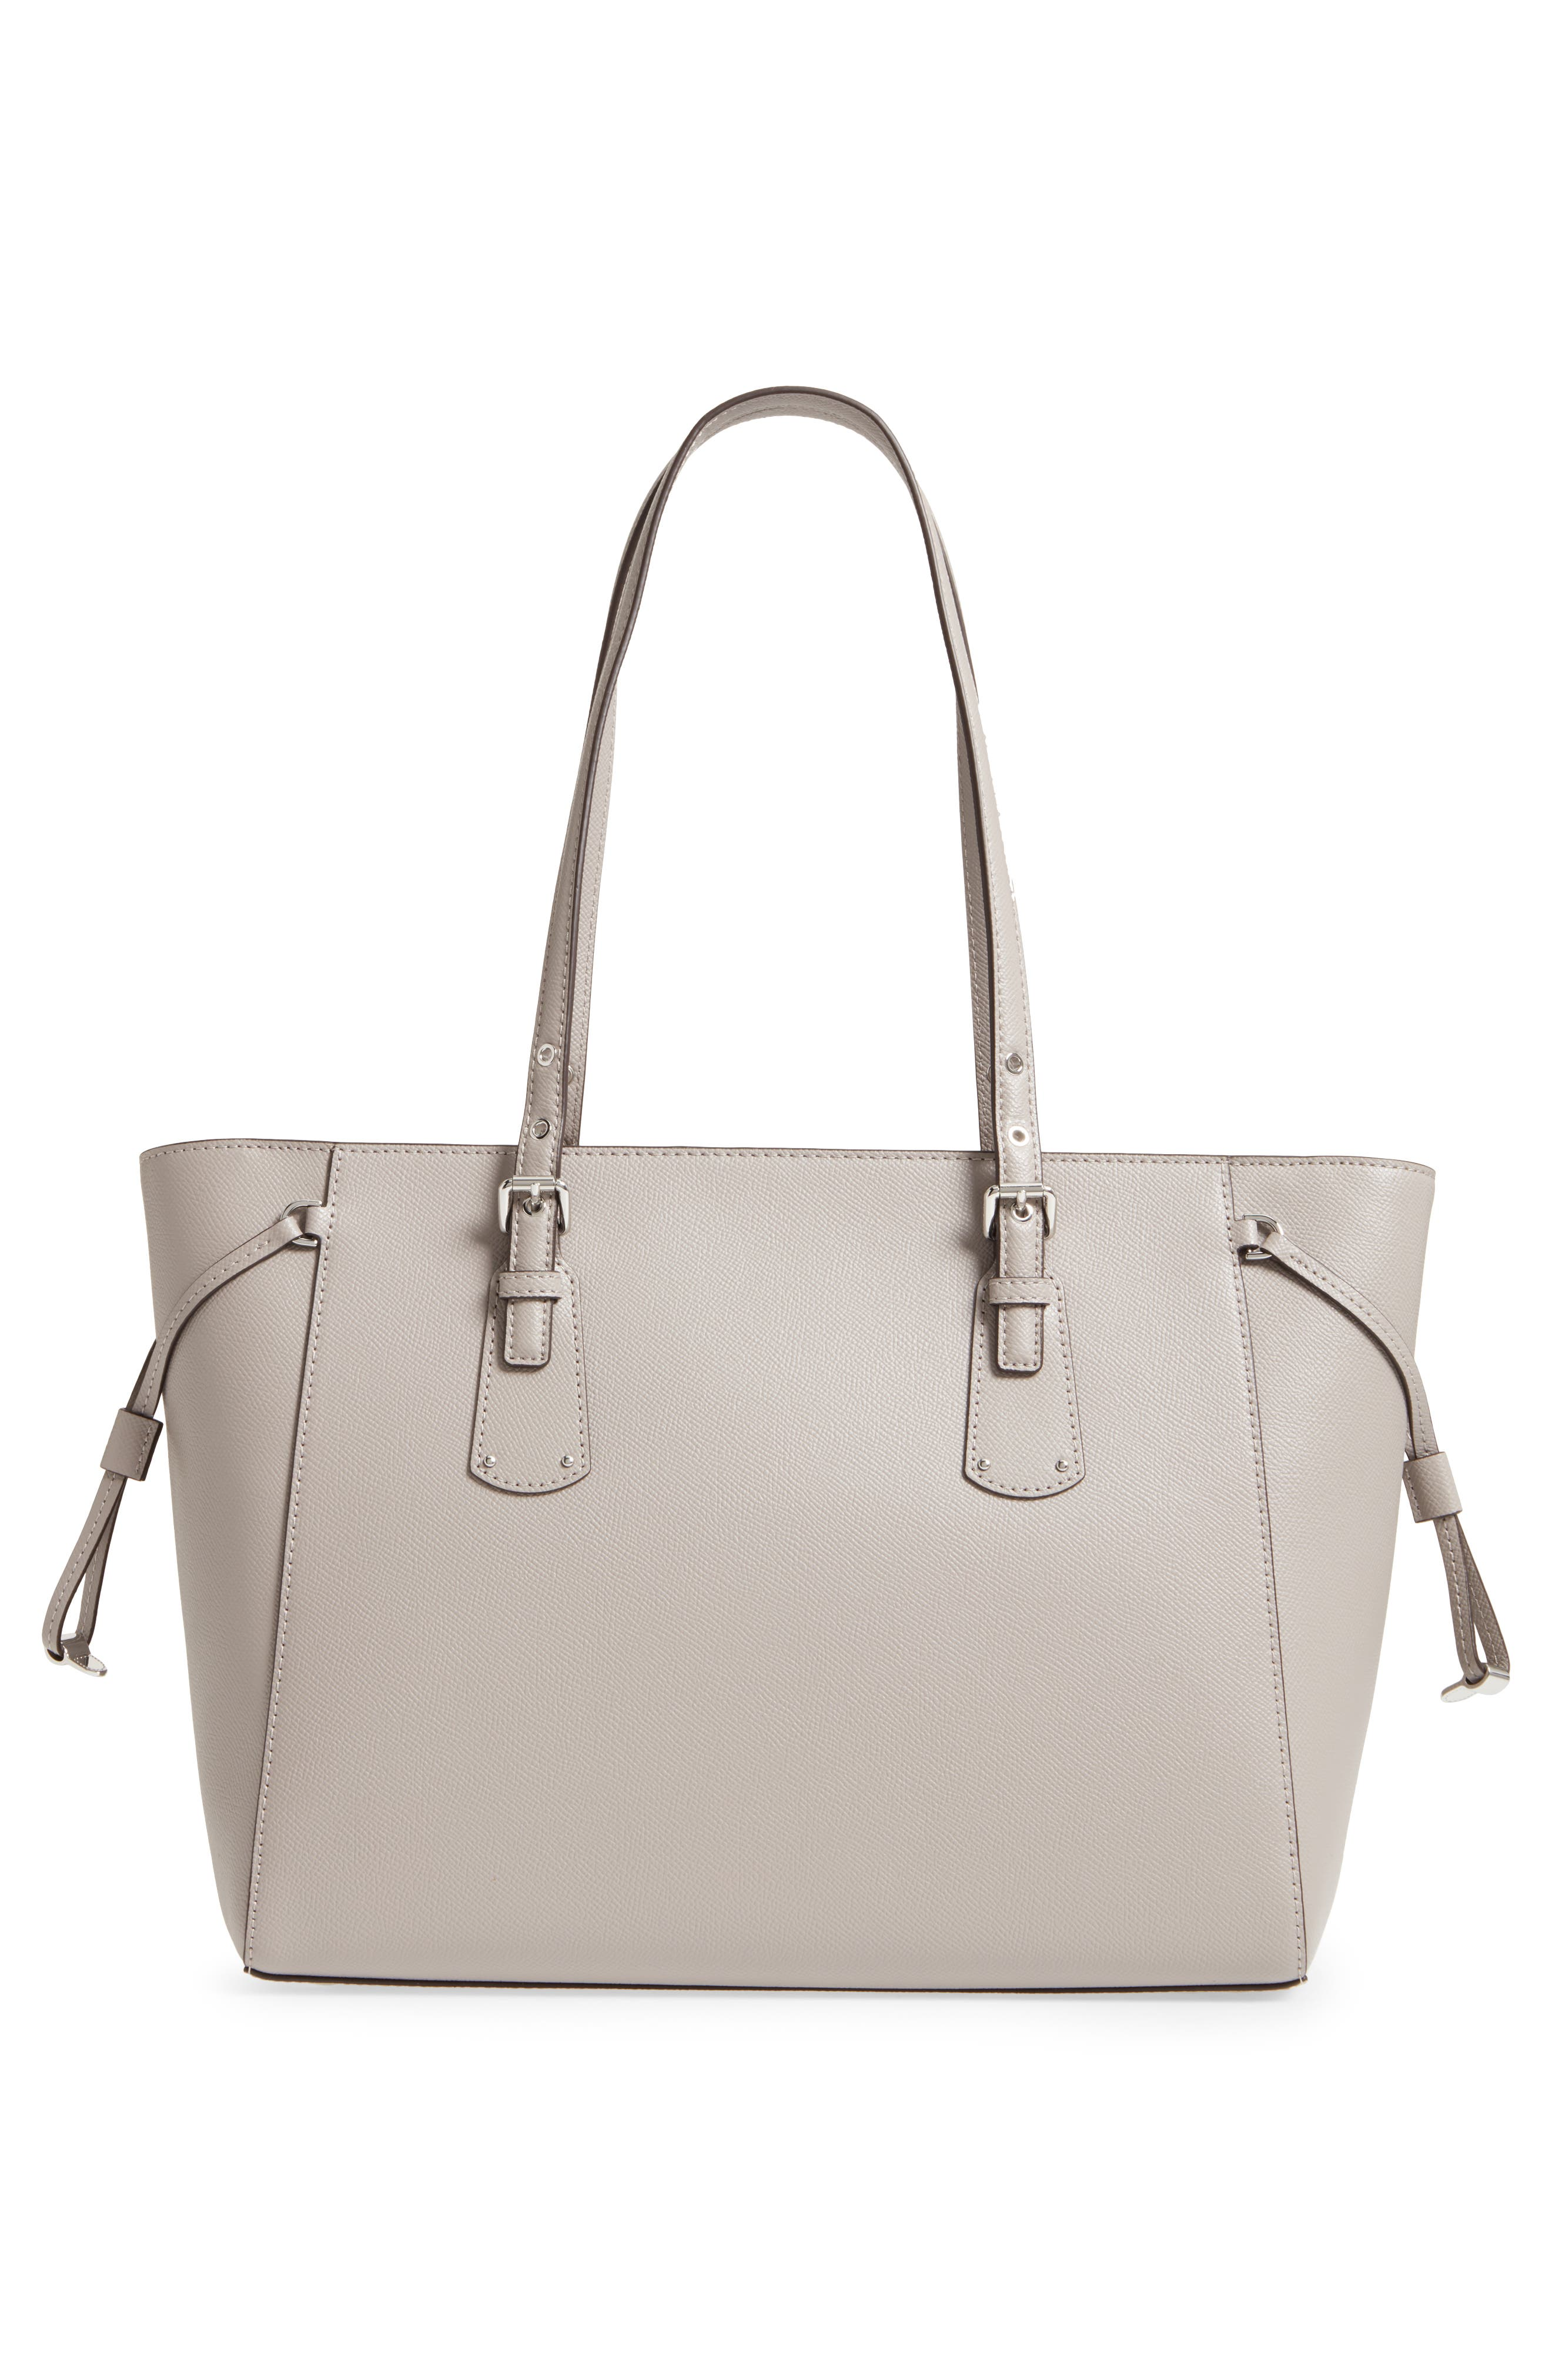 MICHAEL Michael Kors Voyager Leather Tote,                             Alternate thumbnail 3, color,                             Pearl Grey